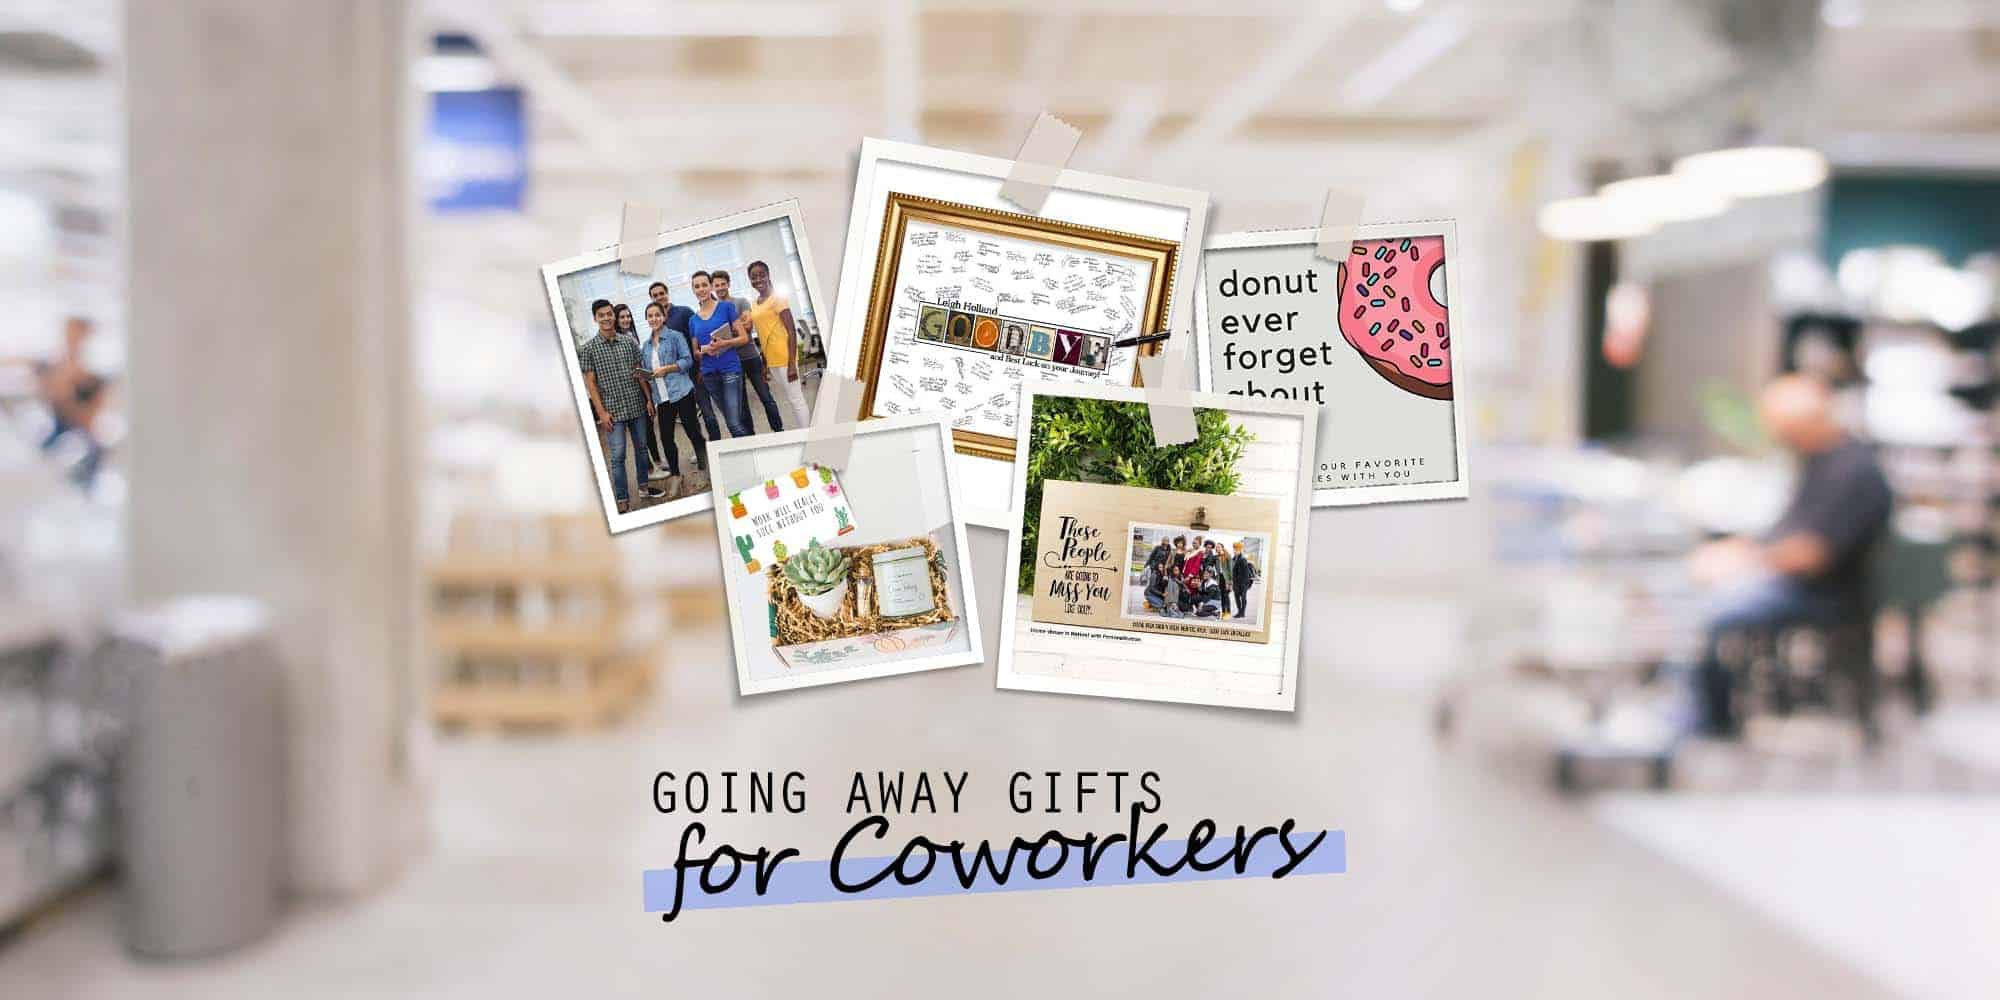 26 Unforgettable Going Away Gifts for Coworkers (2021 Gift Guide)